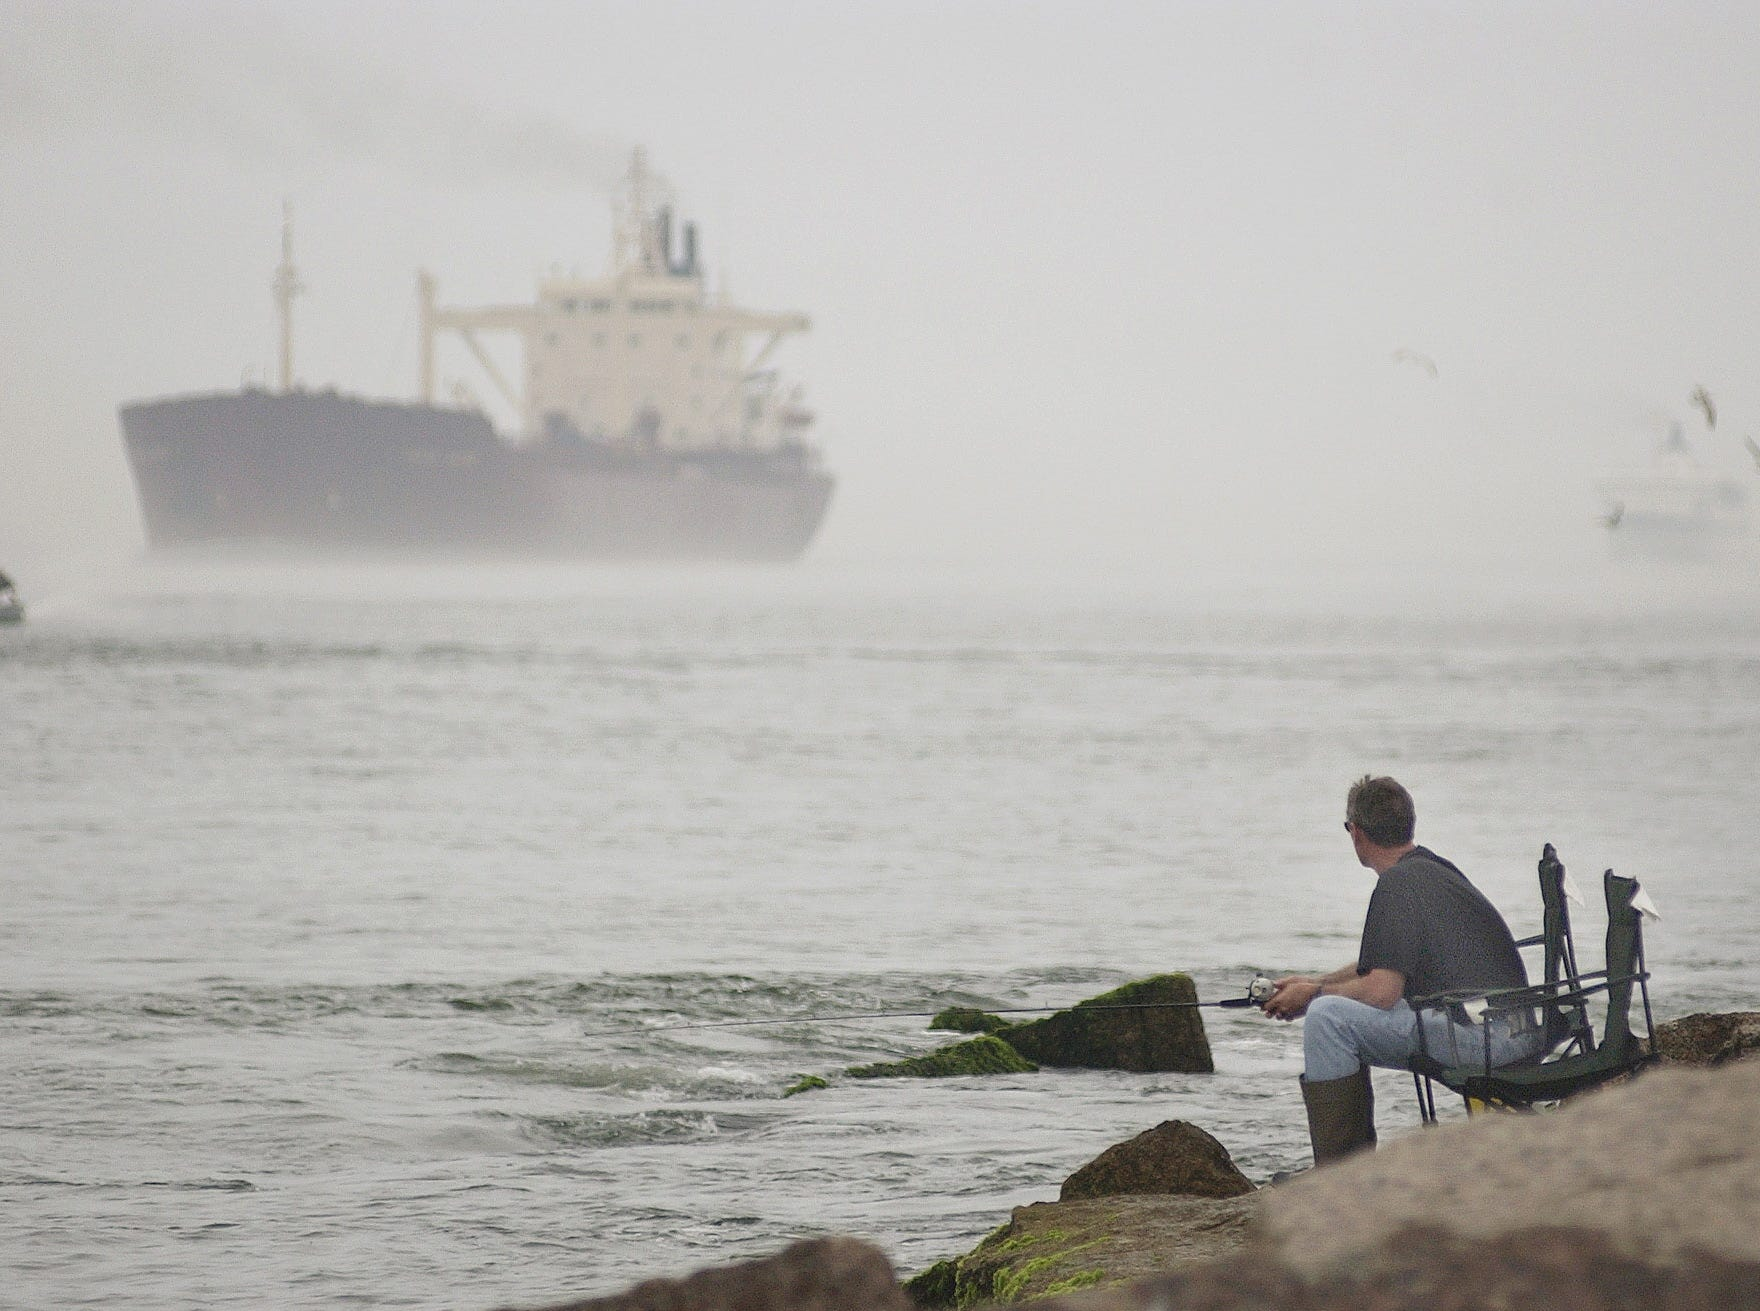 Dion Hodge from New Braunfels, fishes along the Port Aransas jetty as two large ships pass through the fog to come in to port on March 13, 2003.  The first ship is the Tanja Jacob and the second ship is the Texas Treasure.